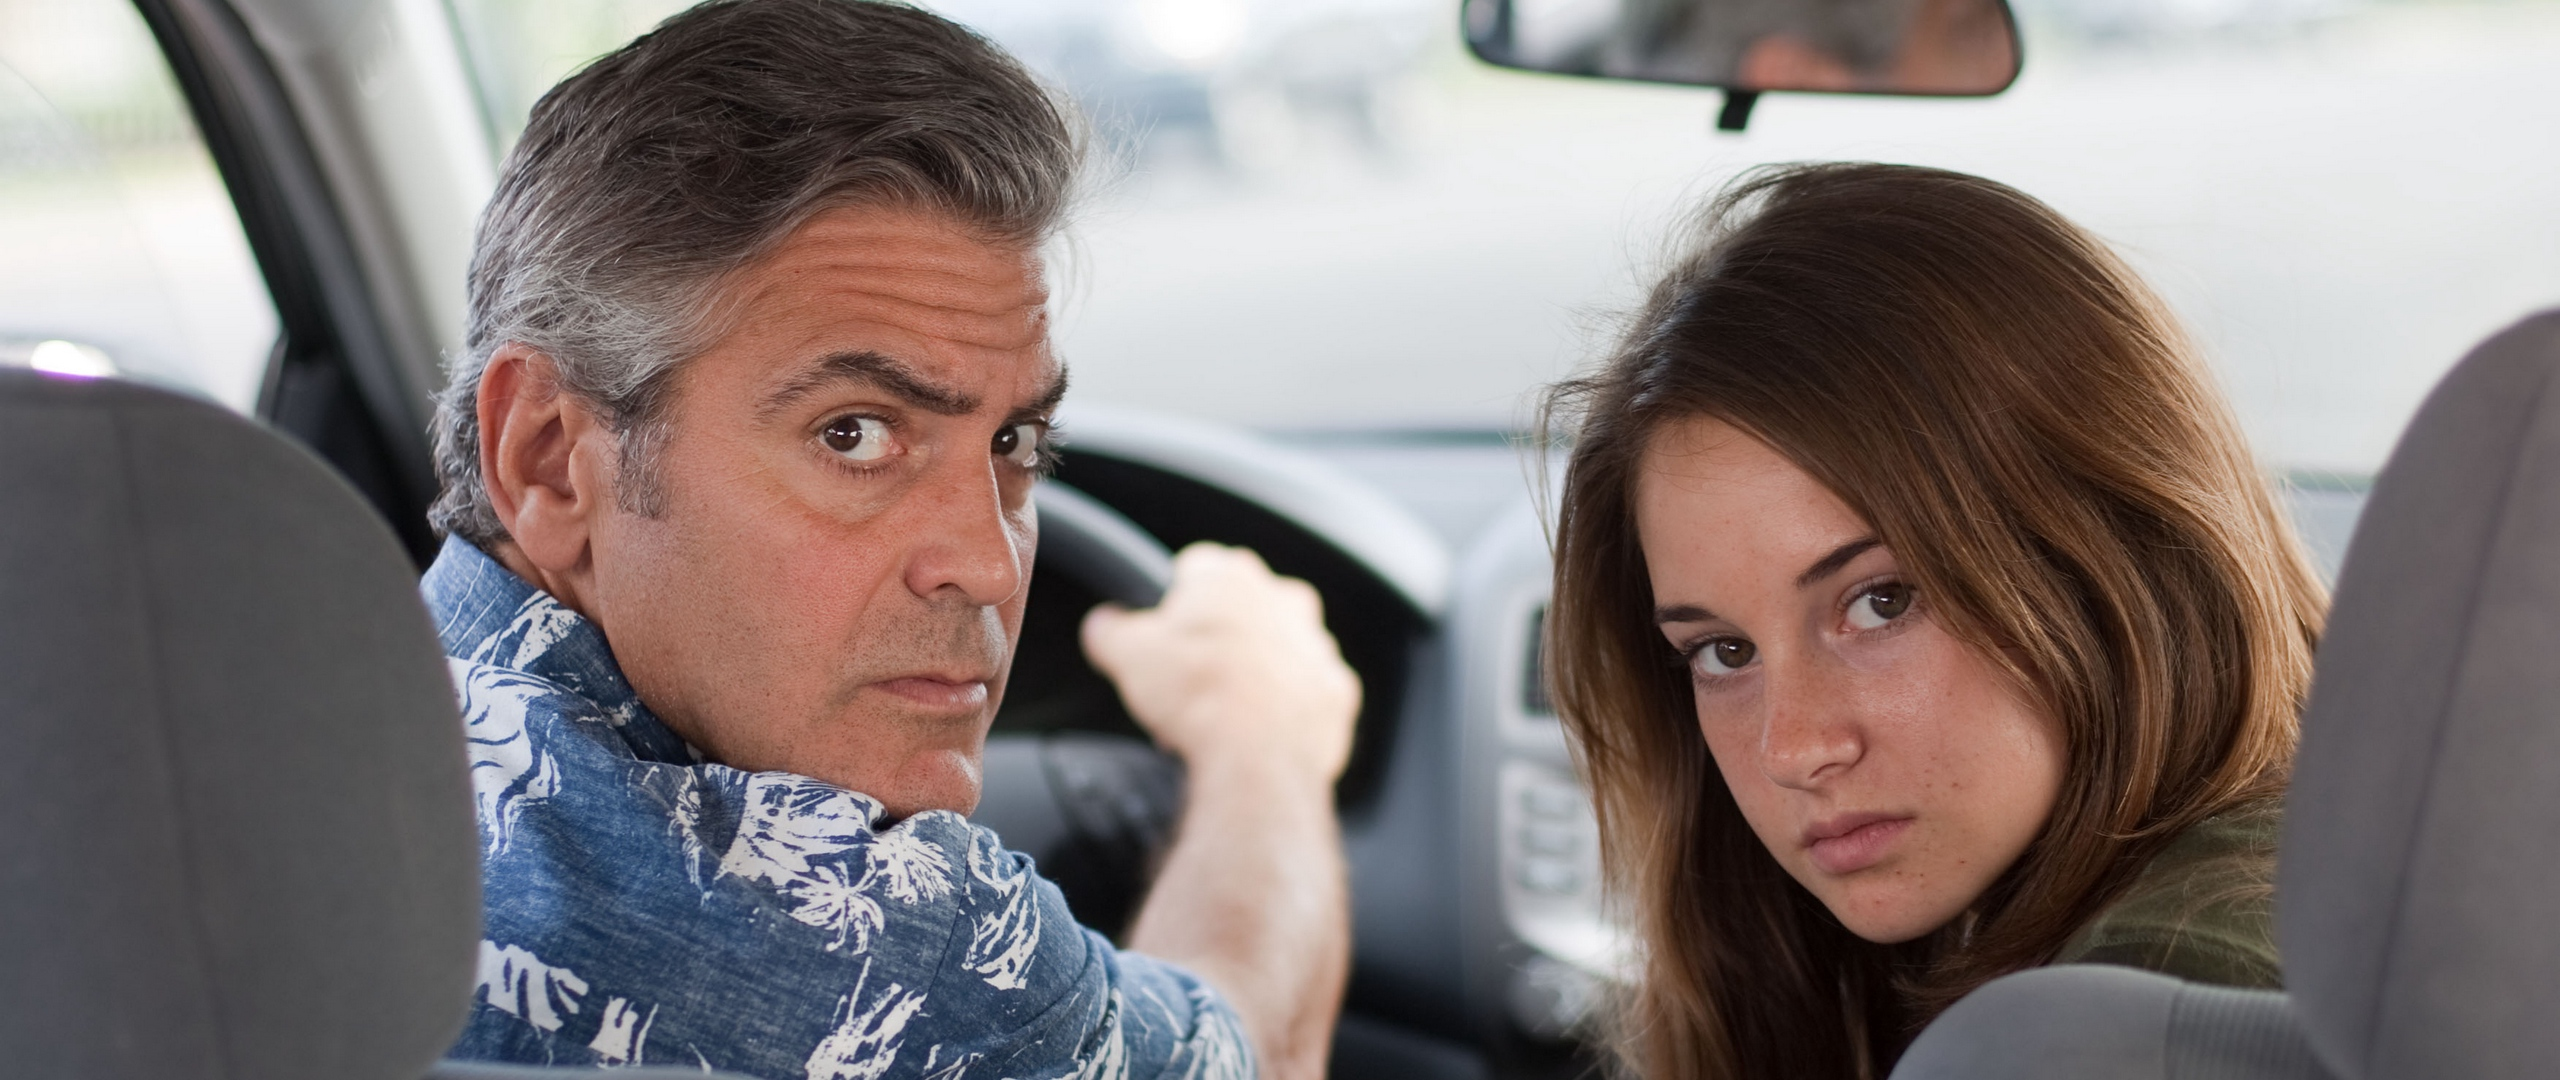 Download wallpaper 2560x1080 the descendants george clooney 2560x1080